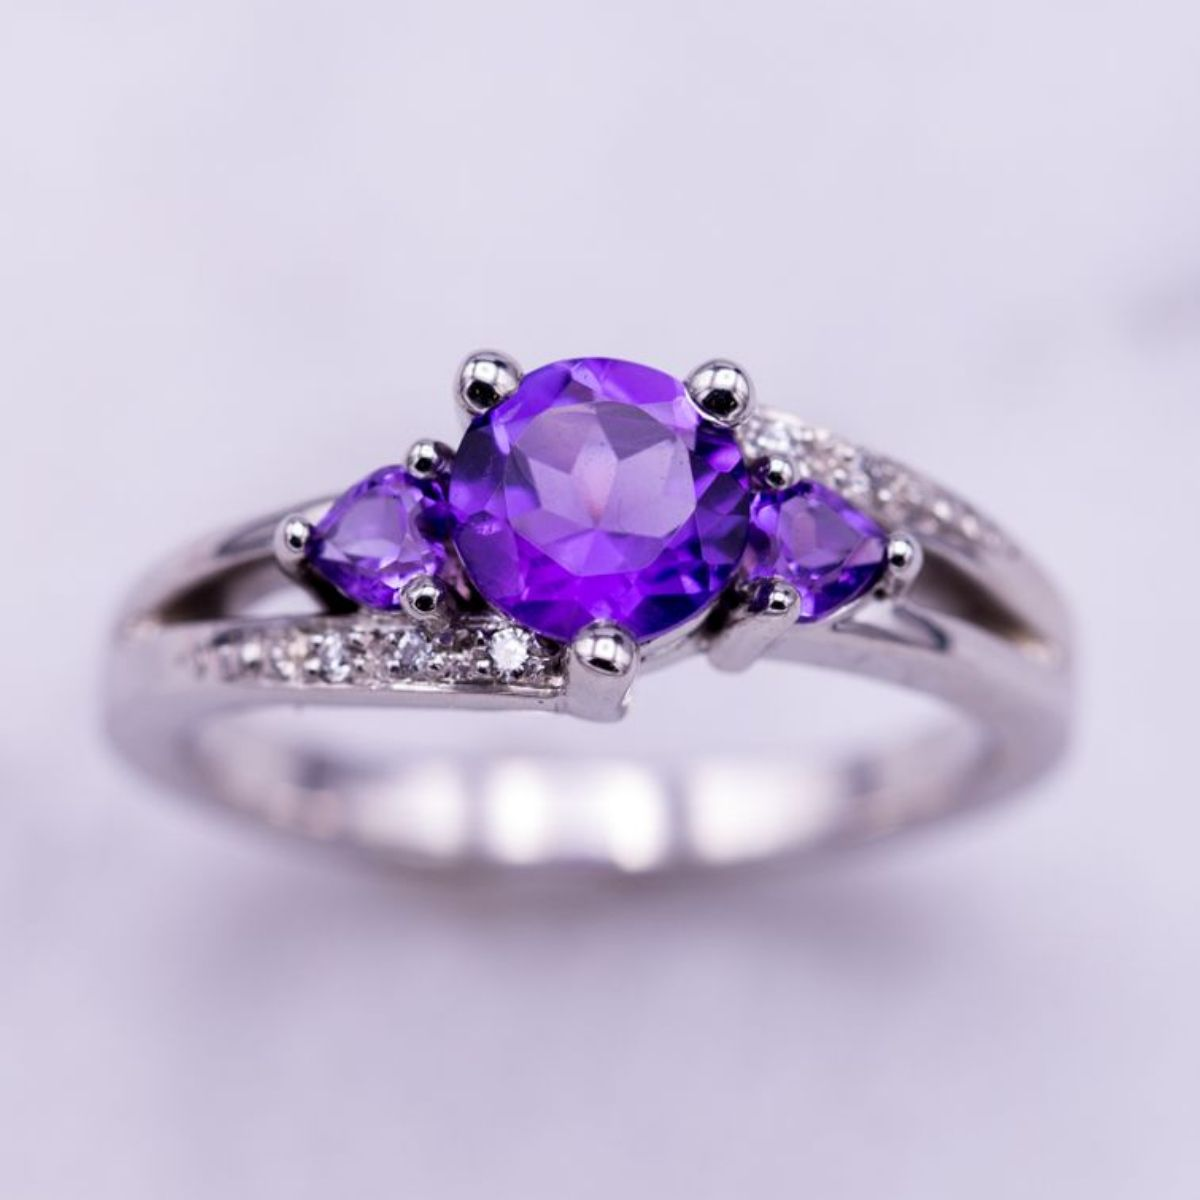 white oval gemstone diamond jewellery image purple gold rings amethyst cluster cut engagement ring